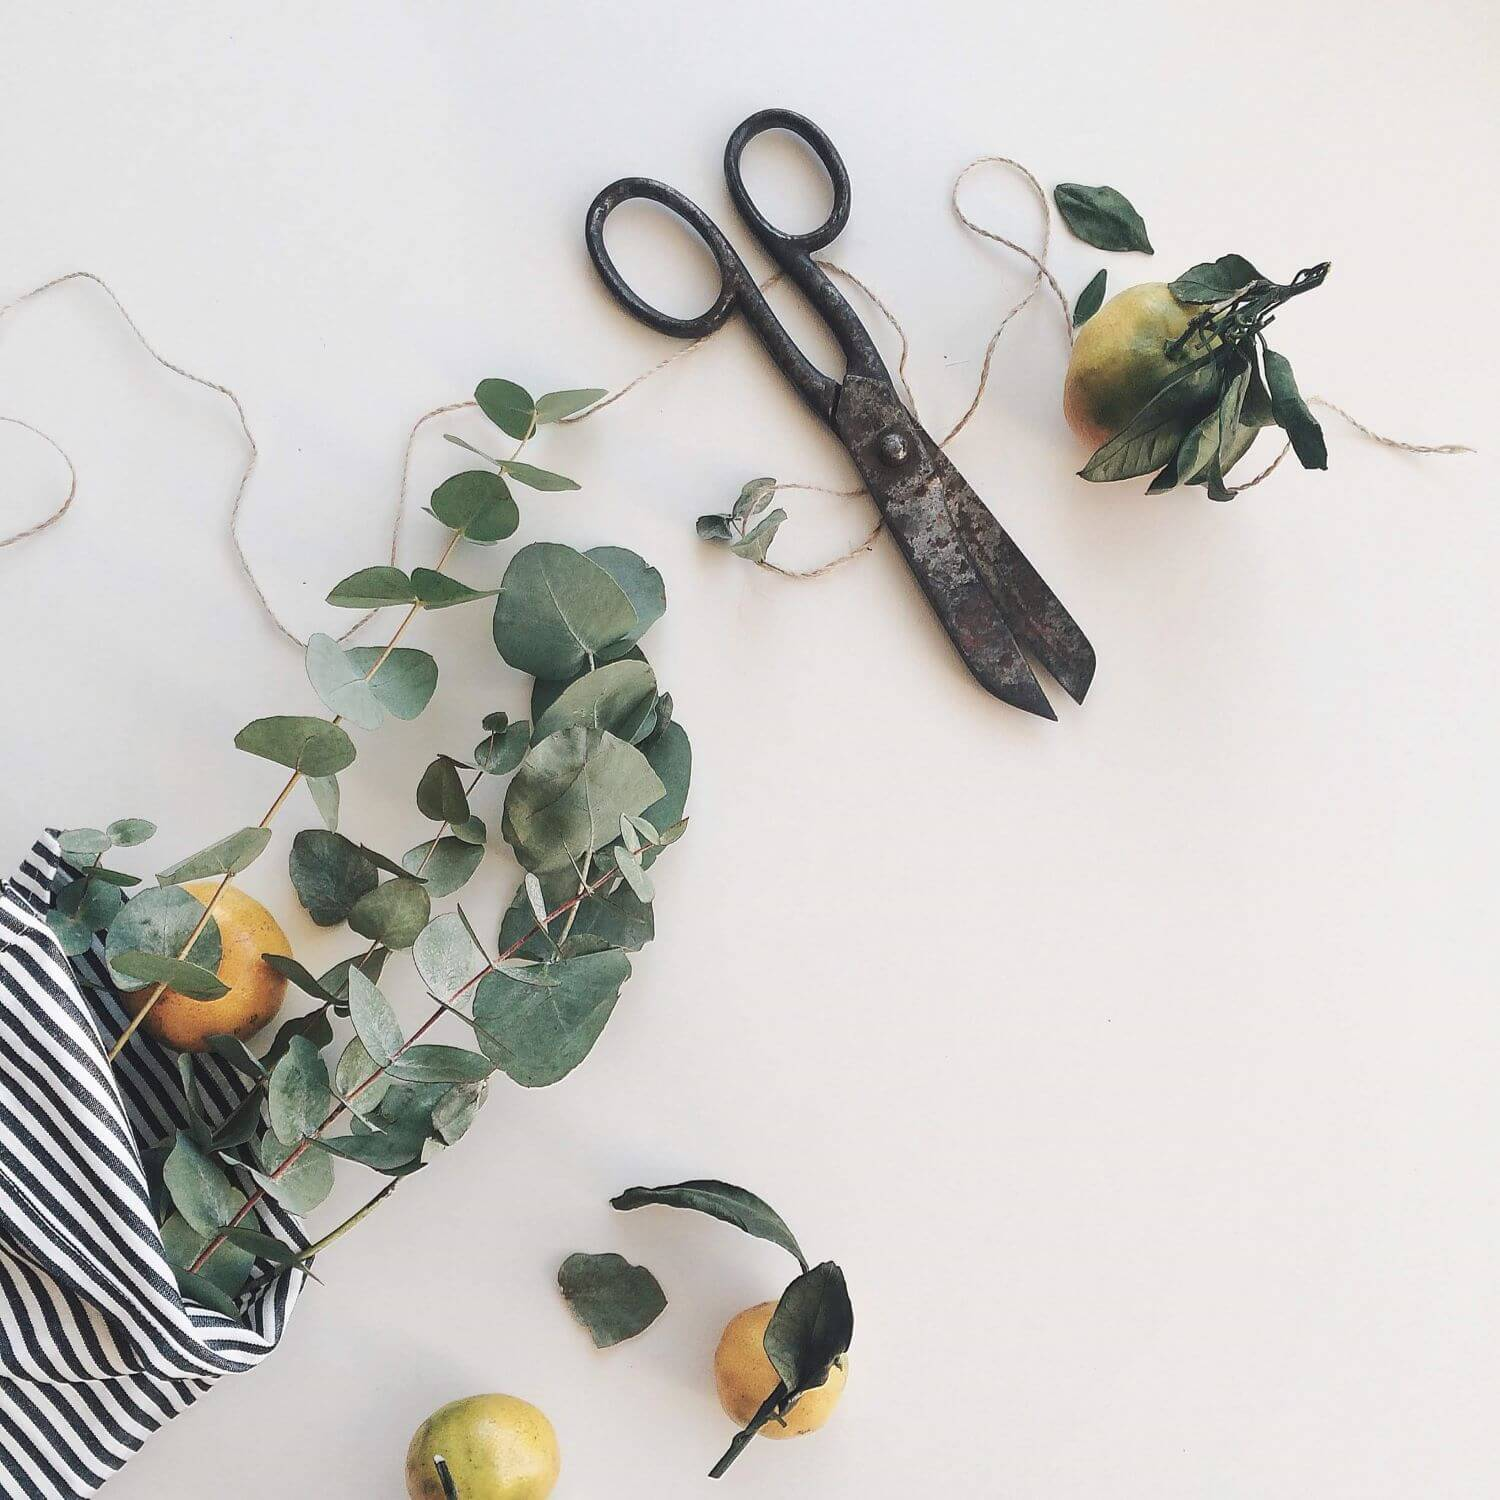 DIY Blogs -by Emalyse the Naturopath